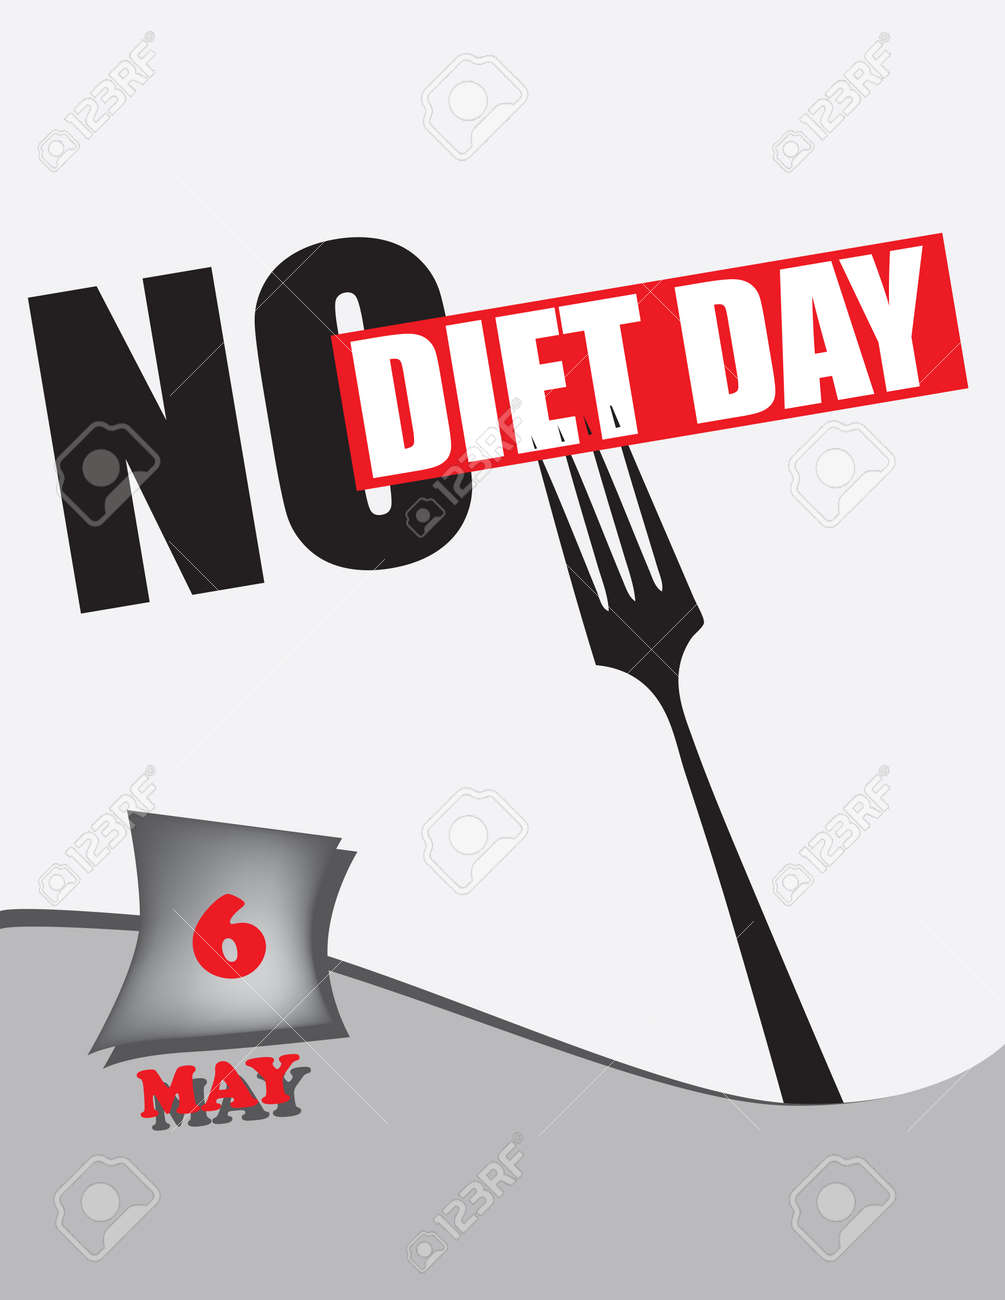 Poster No Diet Day.Vector illustration for a holiday date in may. - 169441831